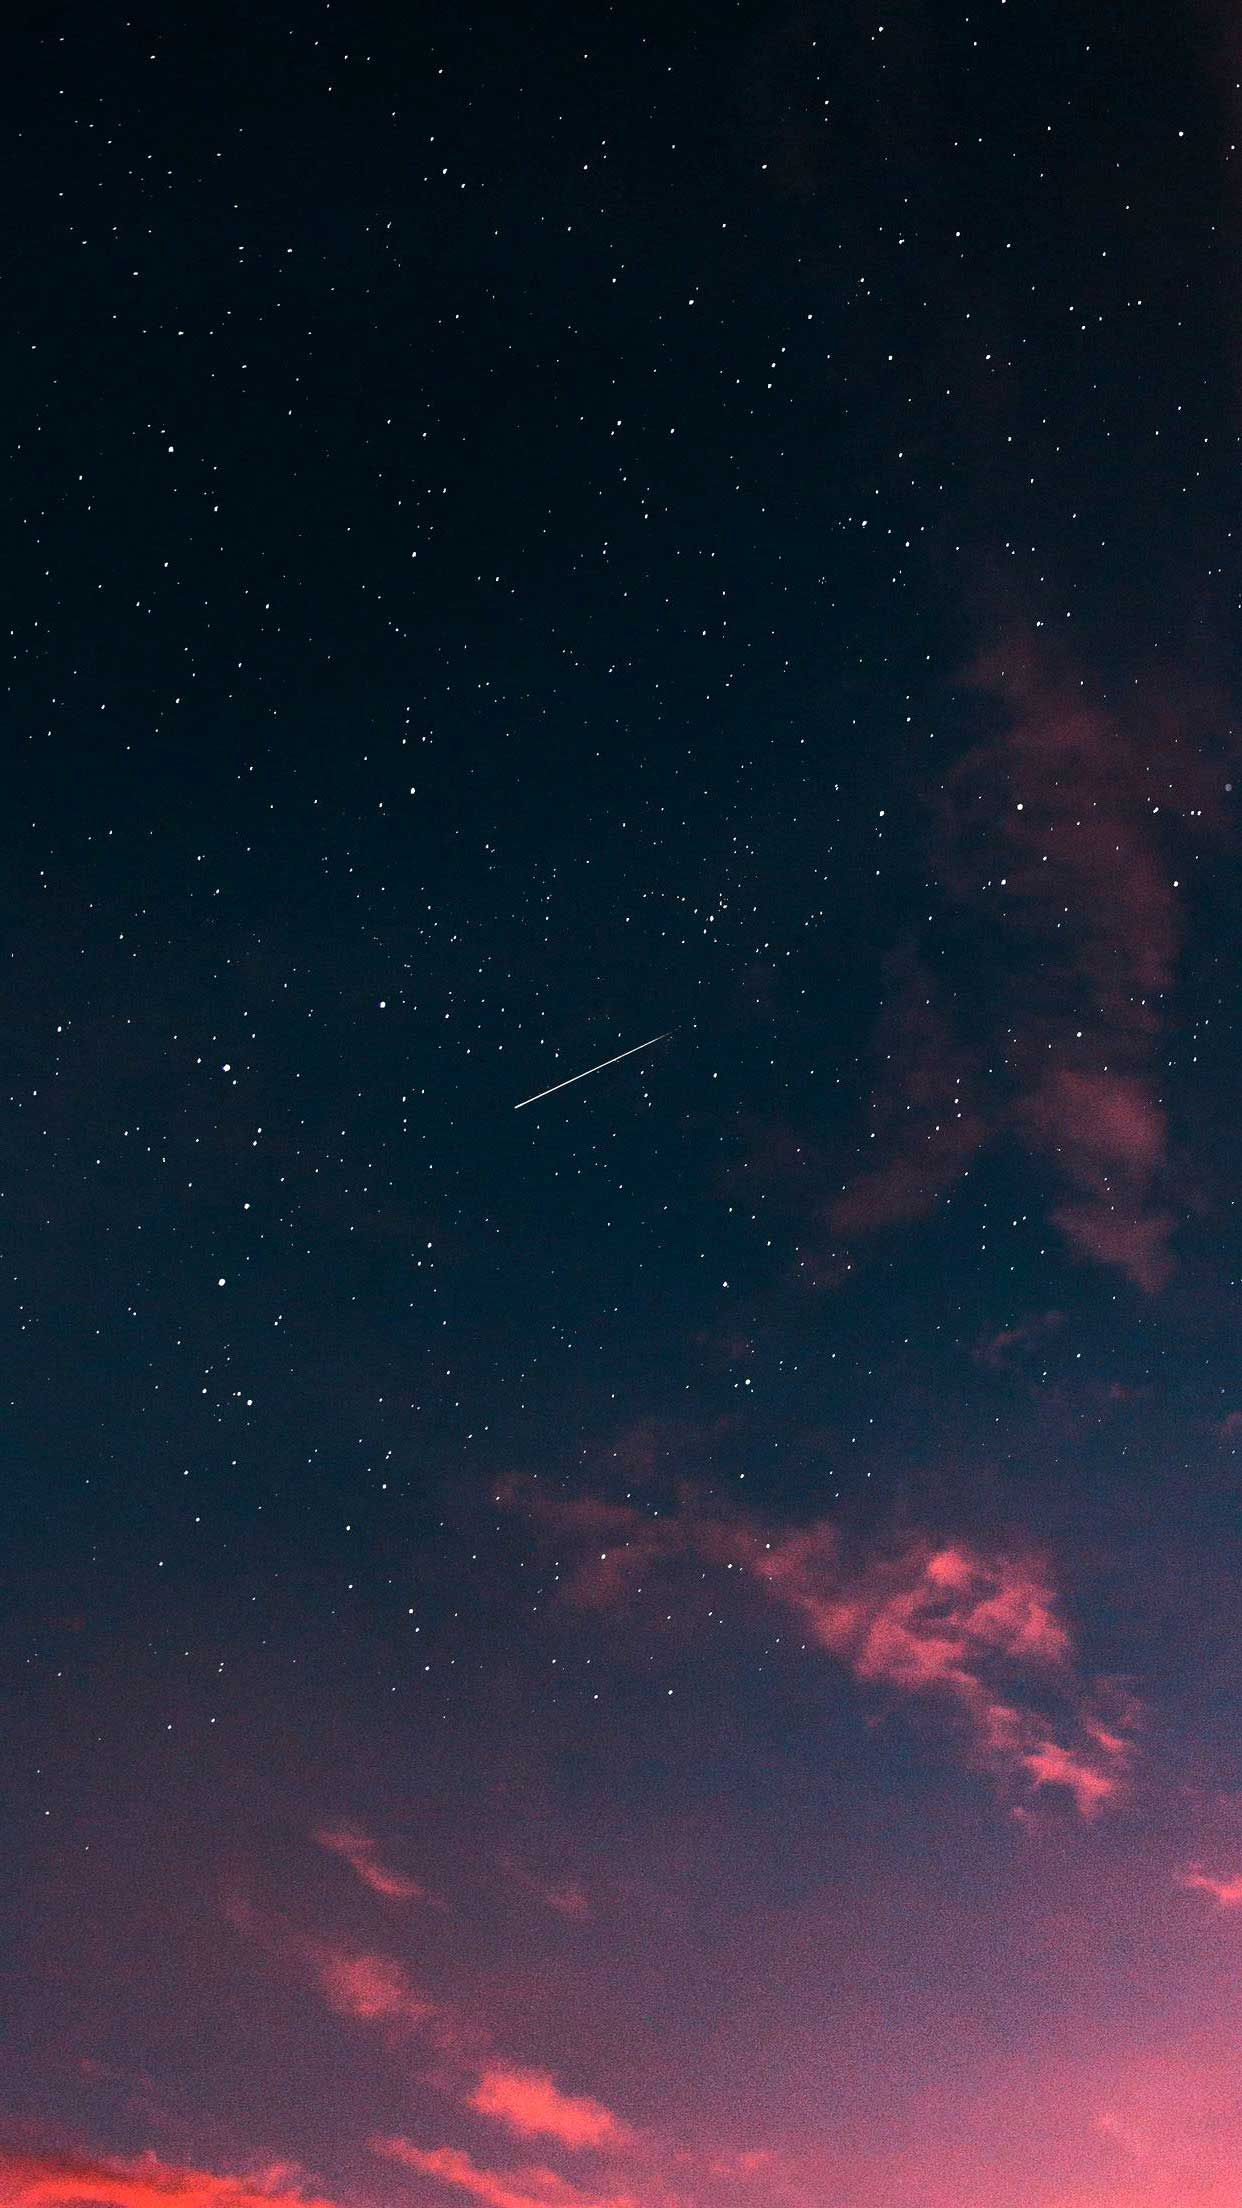 Starry Sky Clouds Sunset Iphone Wallpapers Hd Iphone Wallpaper Sky Sunset Iphone Wallpaper Iphone Wallpaper Night Sky